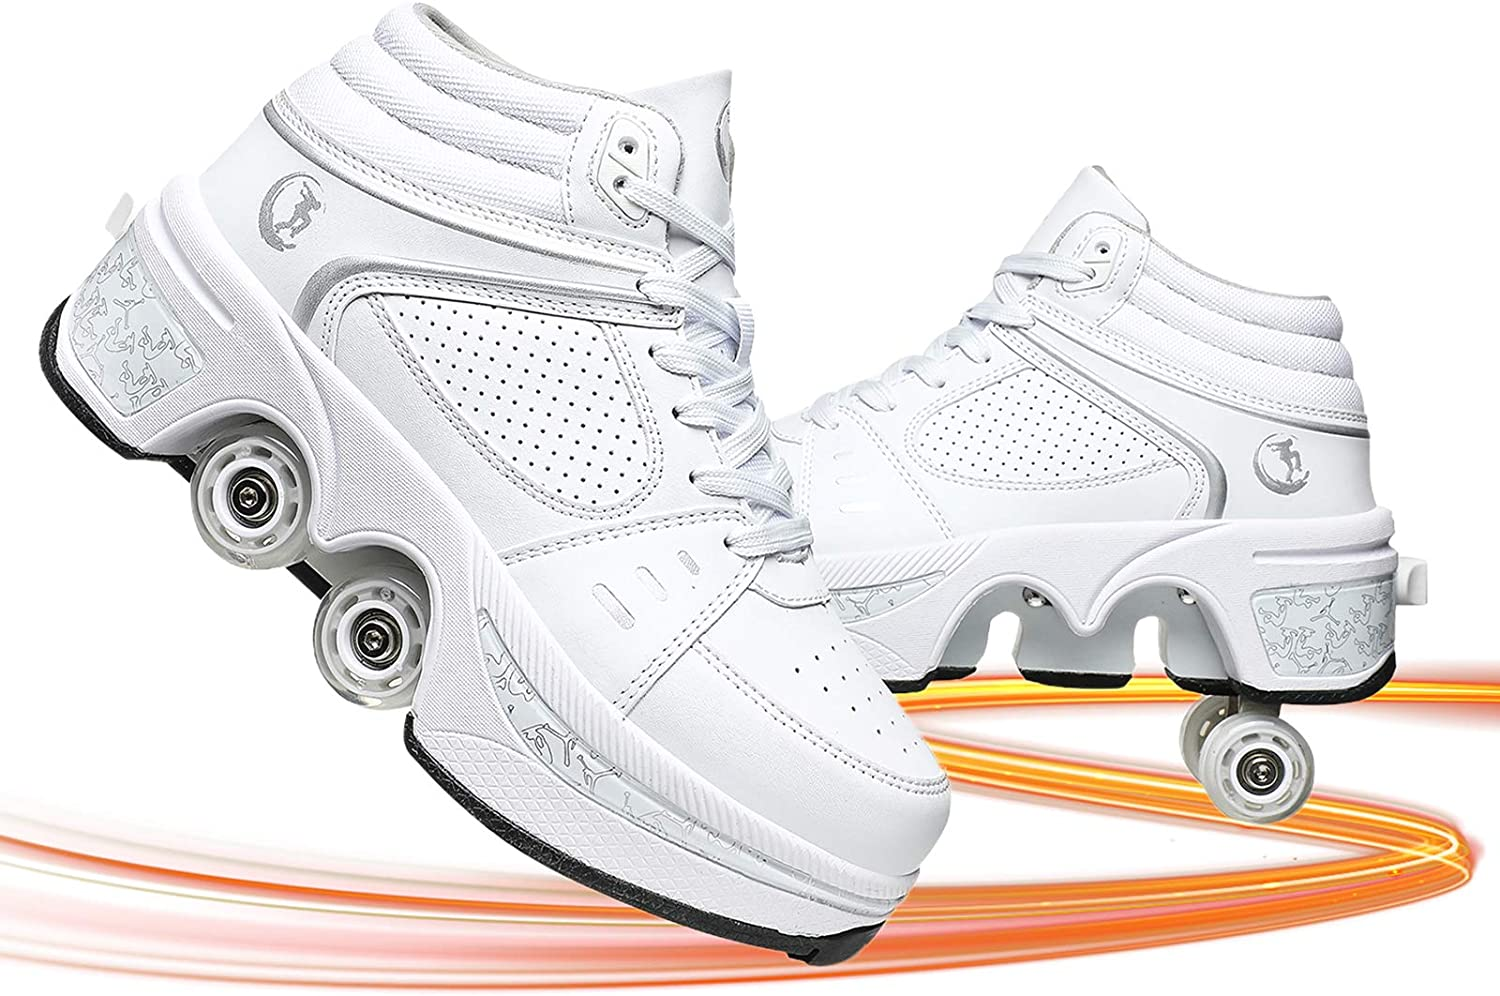 Deformation Roller Shoes Cheap bargain Retractable Wo Ranking TOP10 Skating for Skates